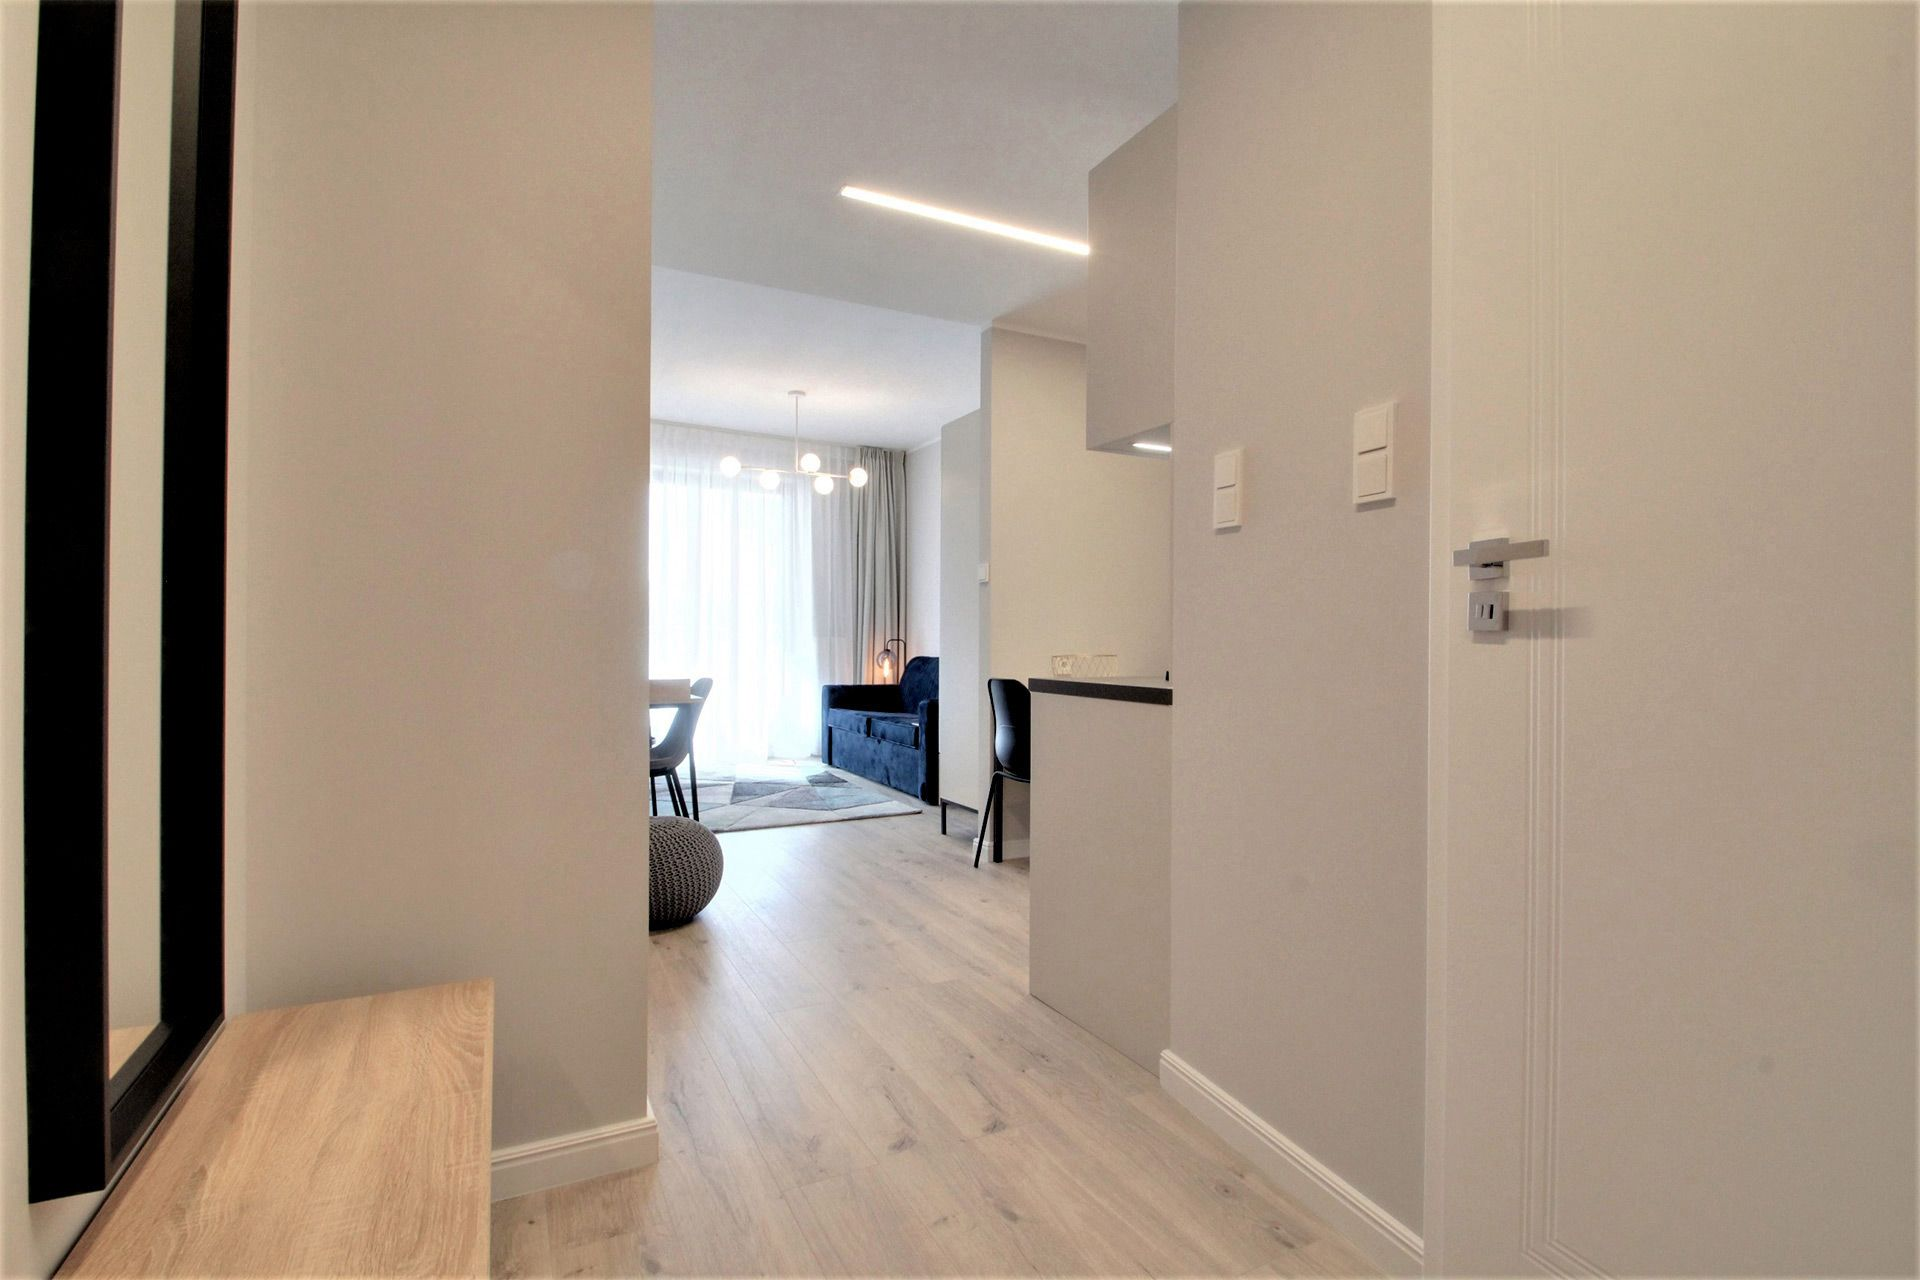 Studio - Small apartment to rent in Warsaw UPR-A-028-3